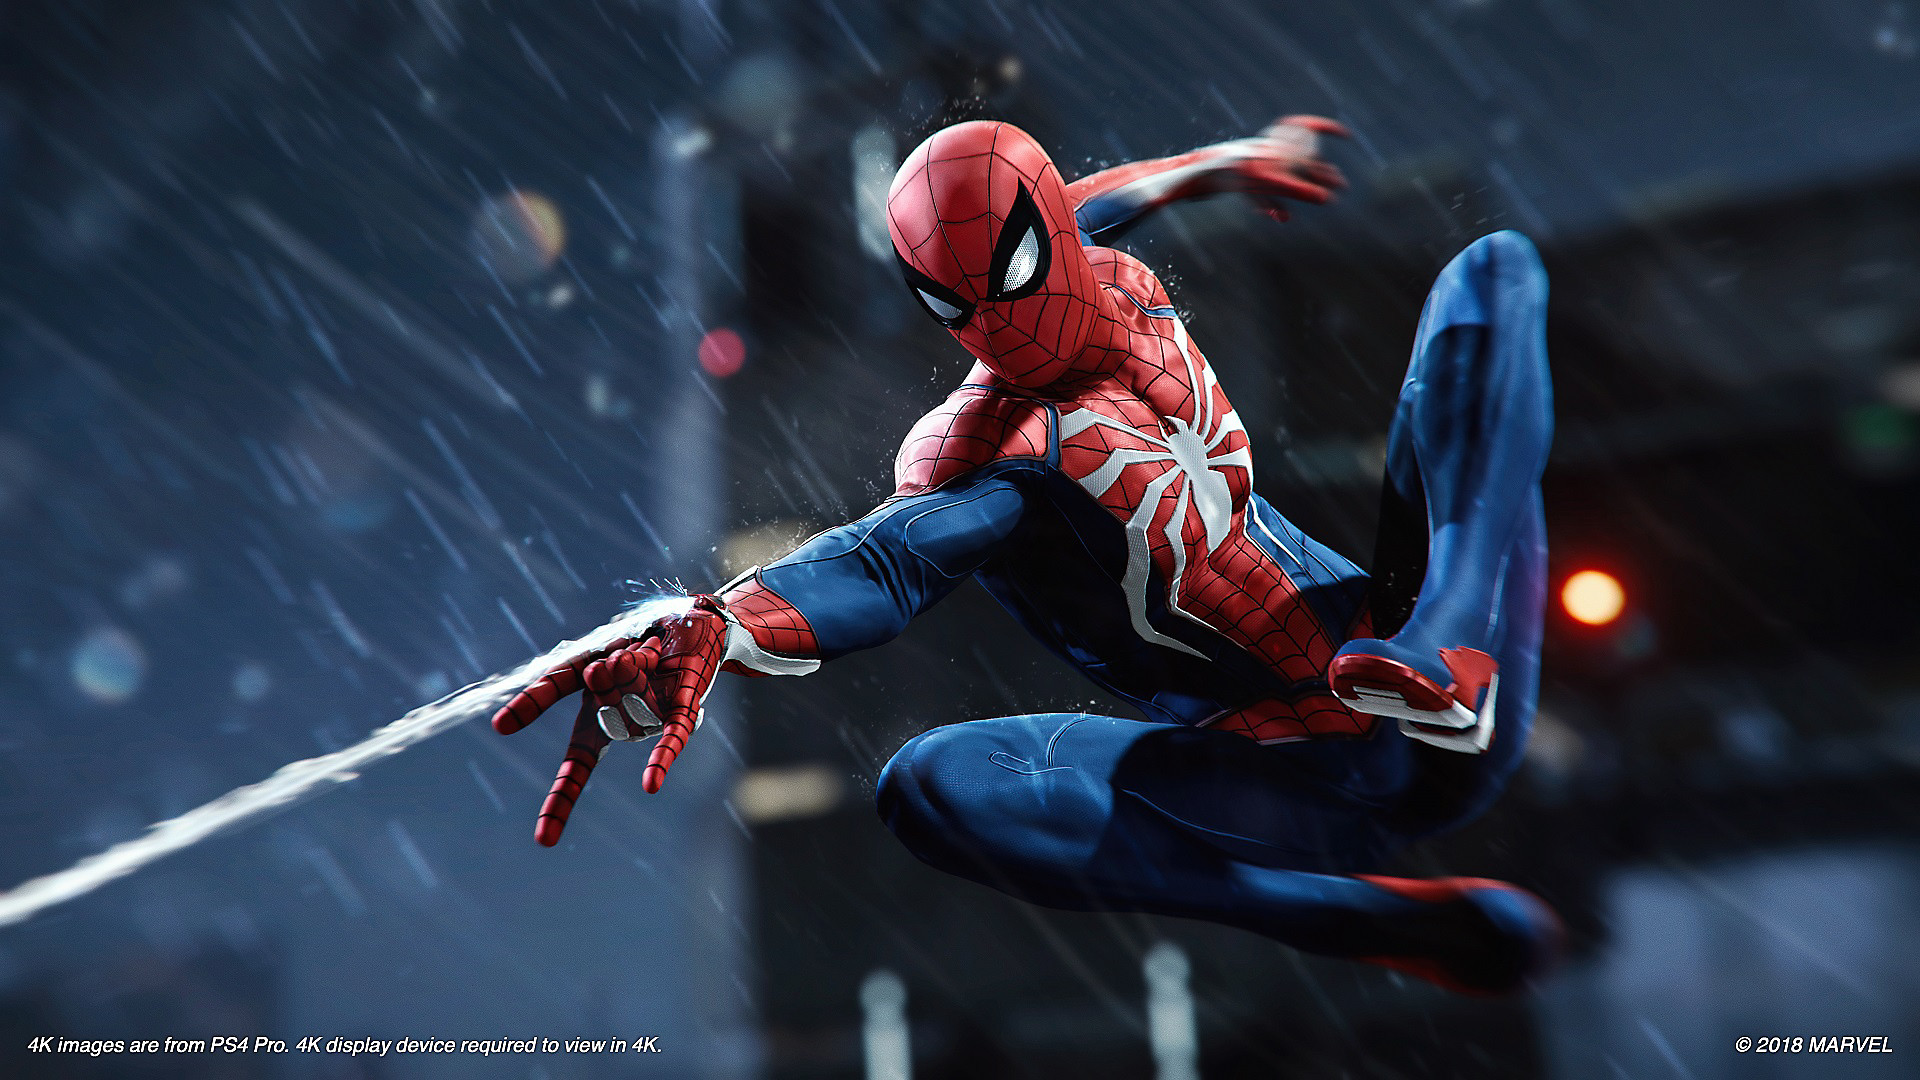 Marvel's Spider-Man Won't Have Free PS4 to PS5 Upgrade